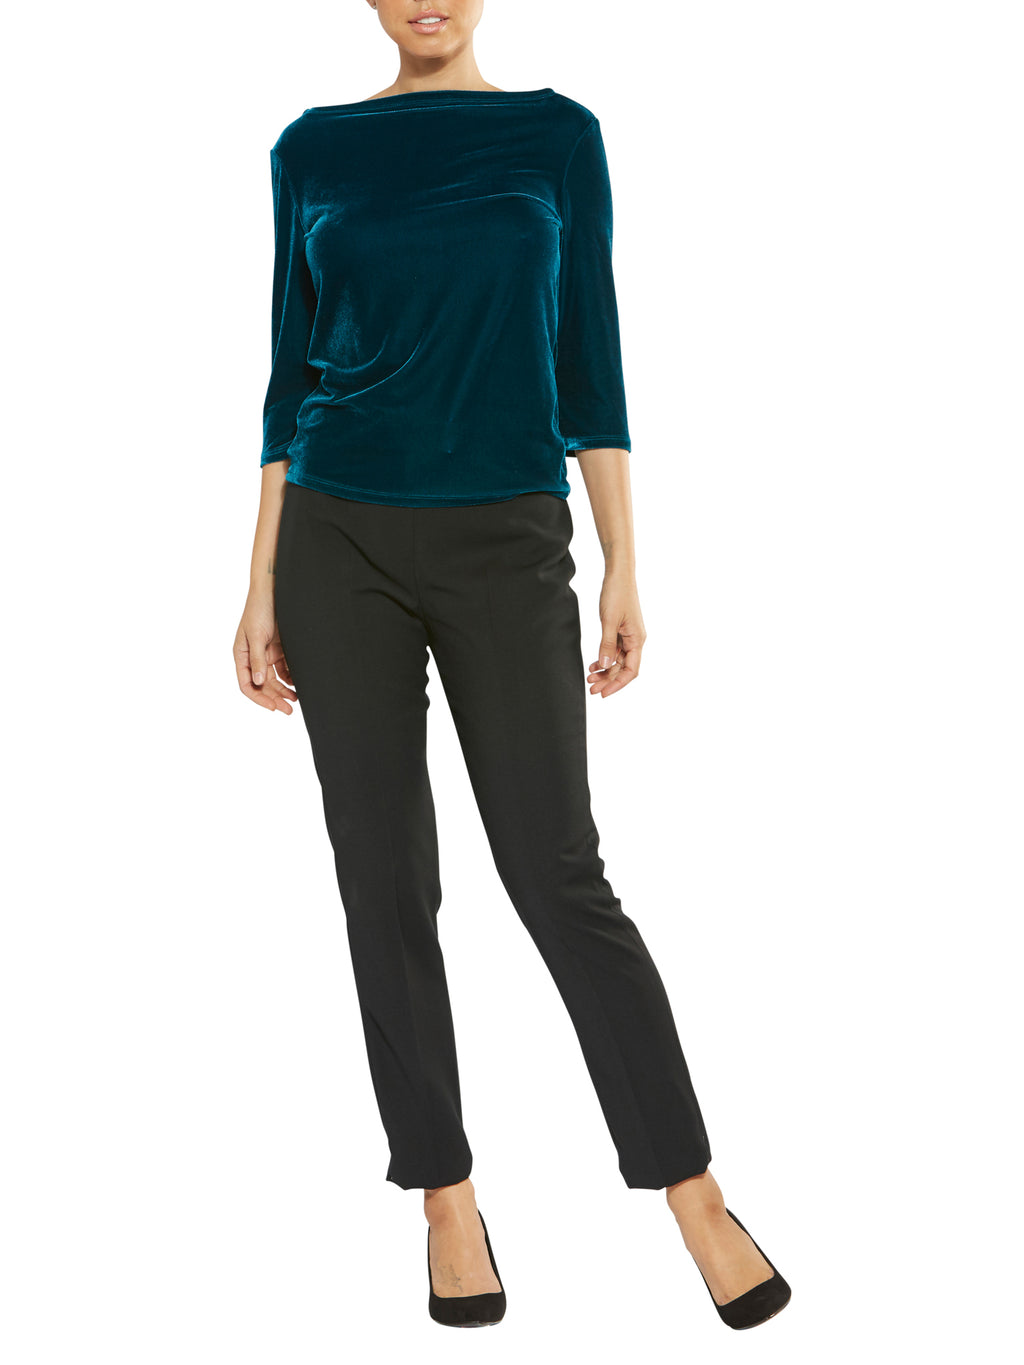 Teal Boat Neck Top